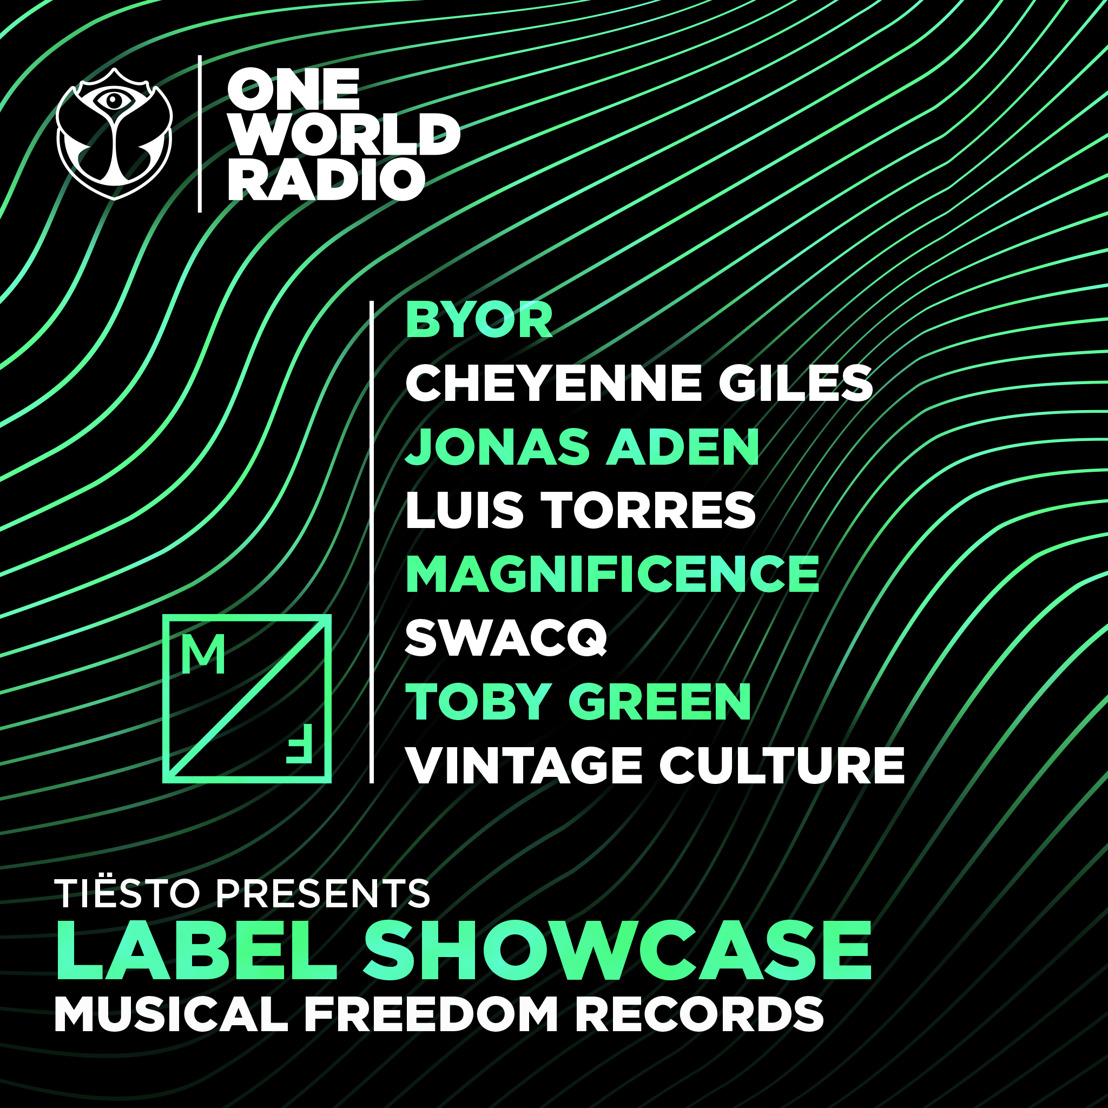 One World Radio launches brand-new monthly special 'Label Showcase', putting a spotlight on a different label every month